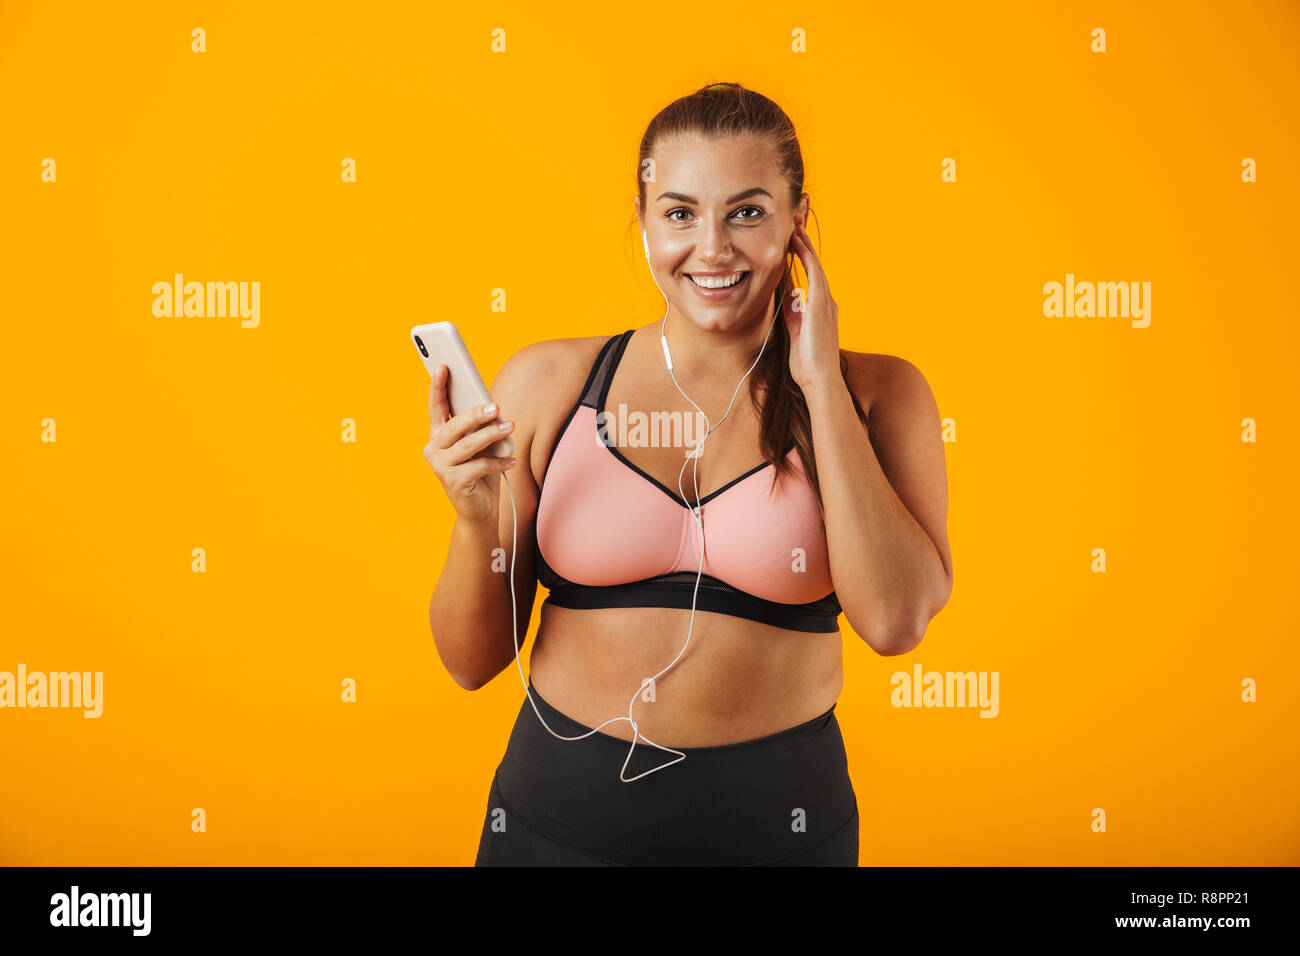 a5b48361667b2 Portrait of smiling chubby woman in sportive bra listening to music with  earphones and smartphone isolated over yellow background